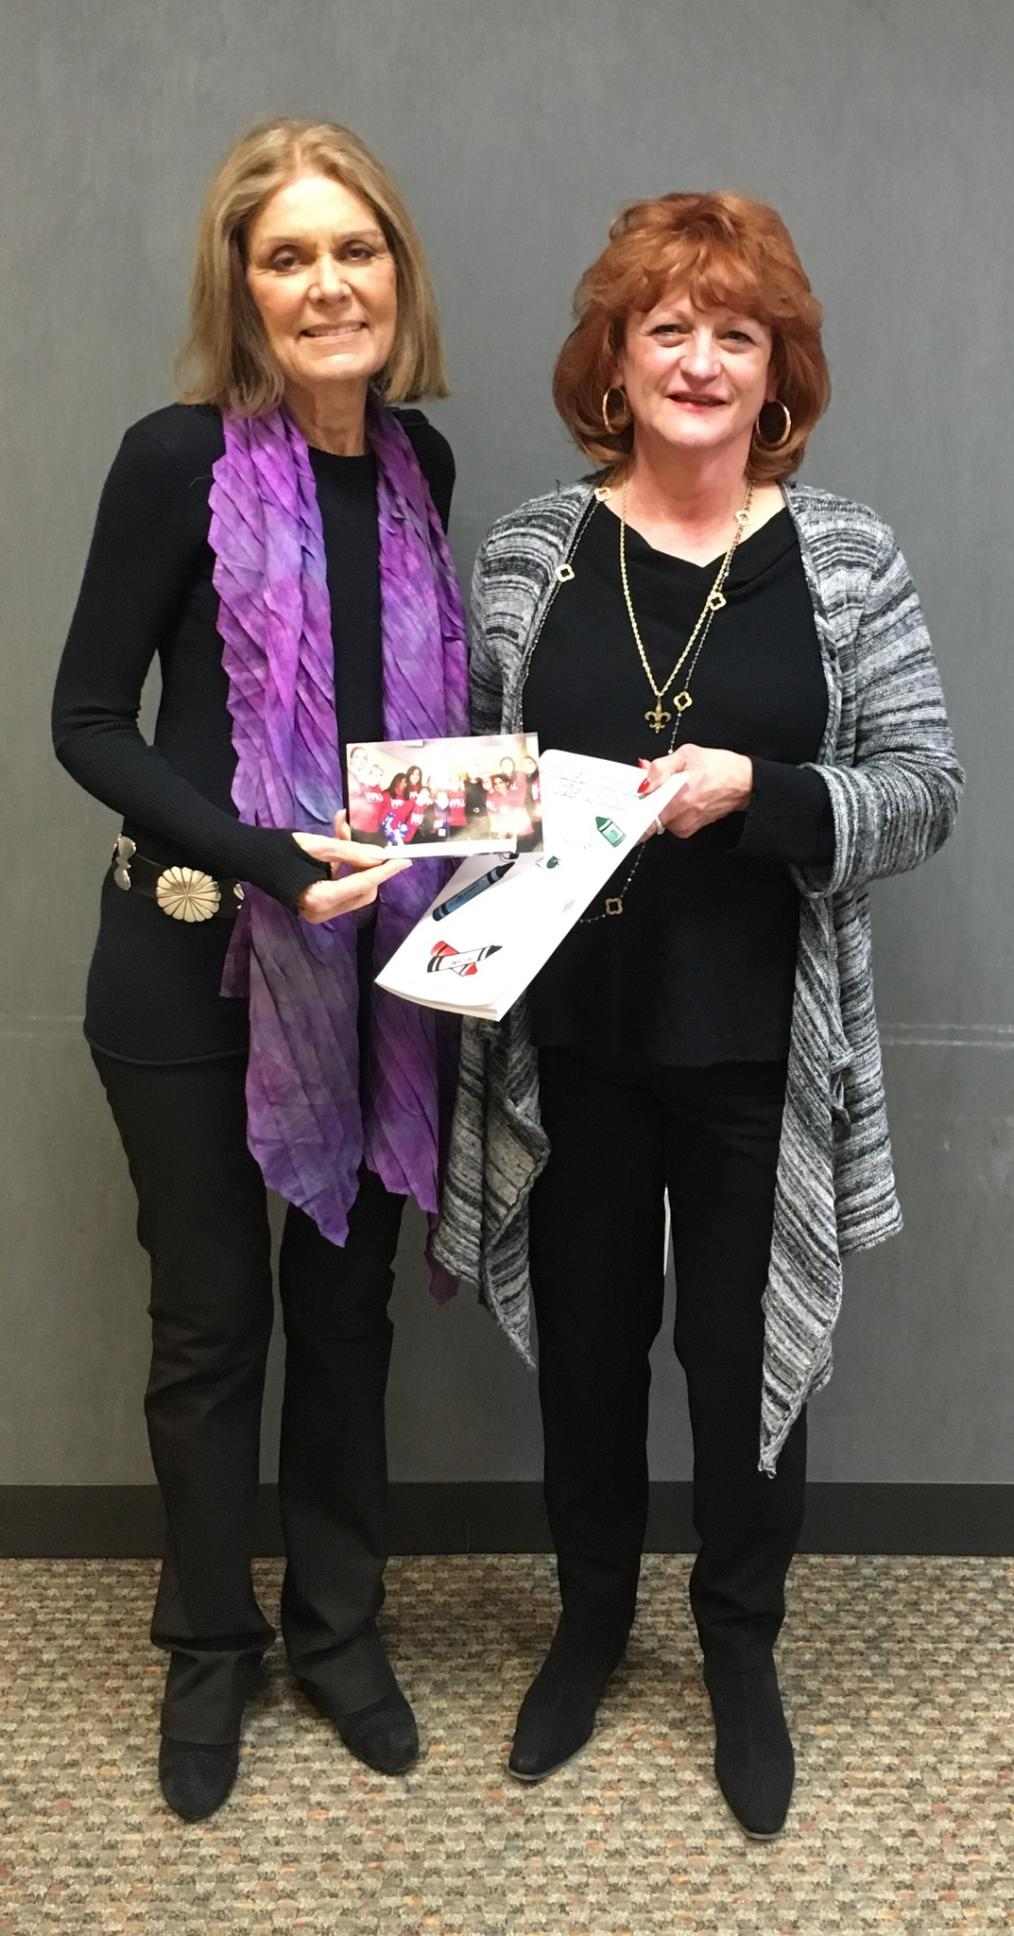 WILL program director Mary Lynn Hopps presents Steinem with a women's empowerment coloring book created by a WILL alum!